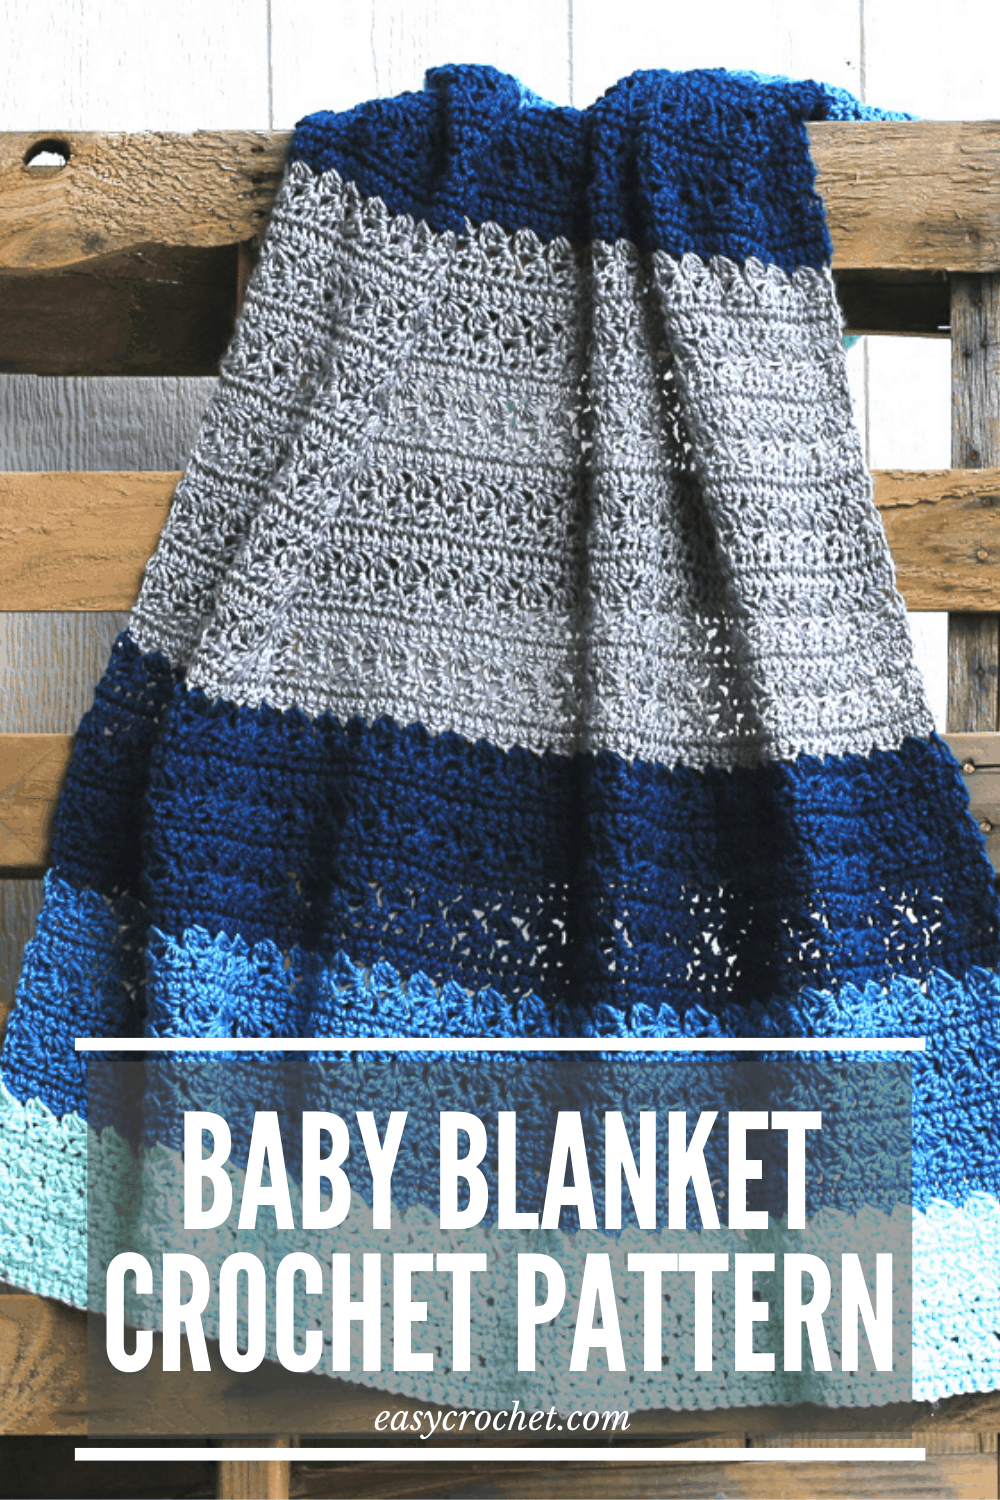 FREE simple stitch crochet baby blanket pattern. via @easycrochetcom